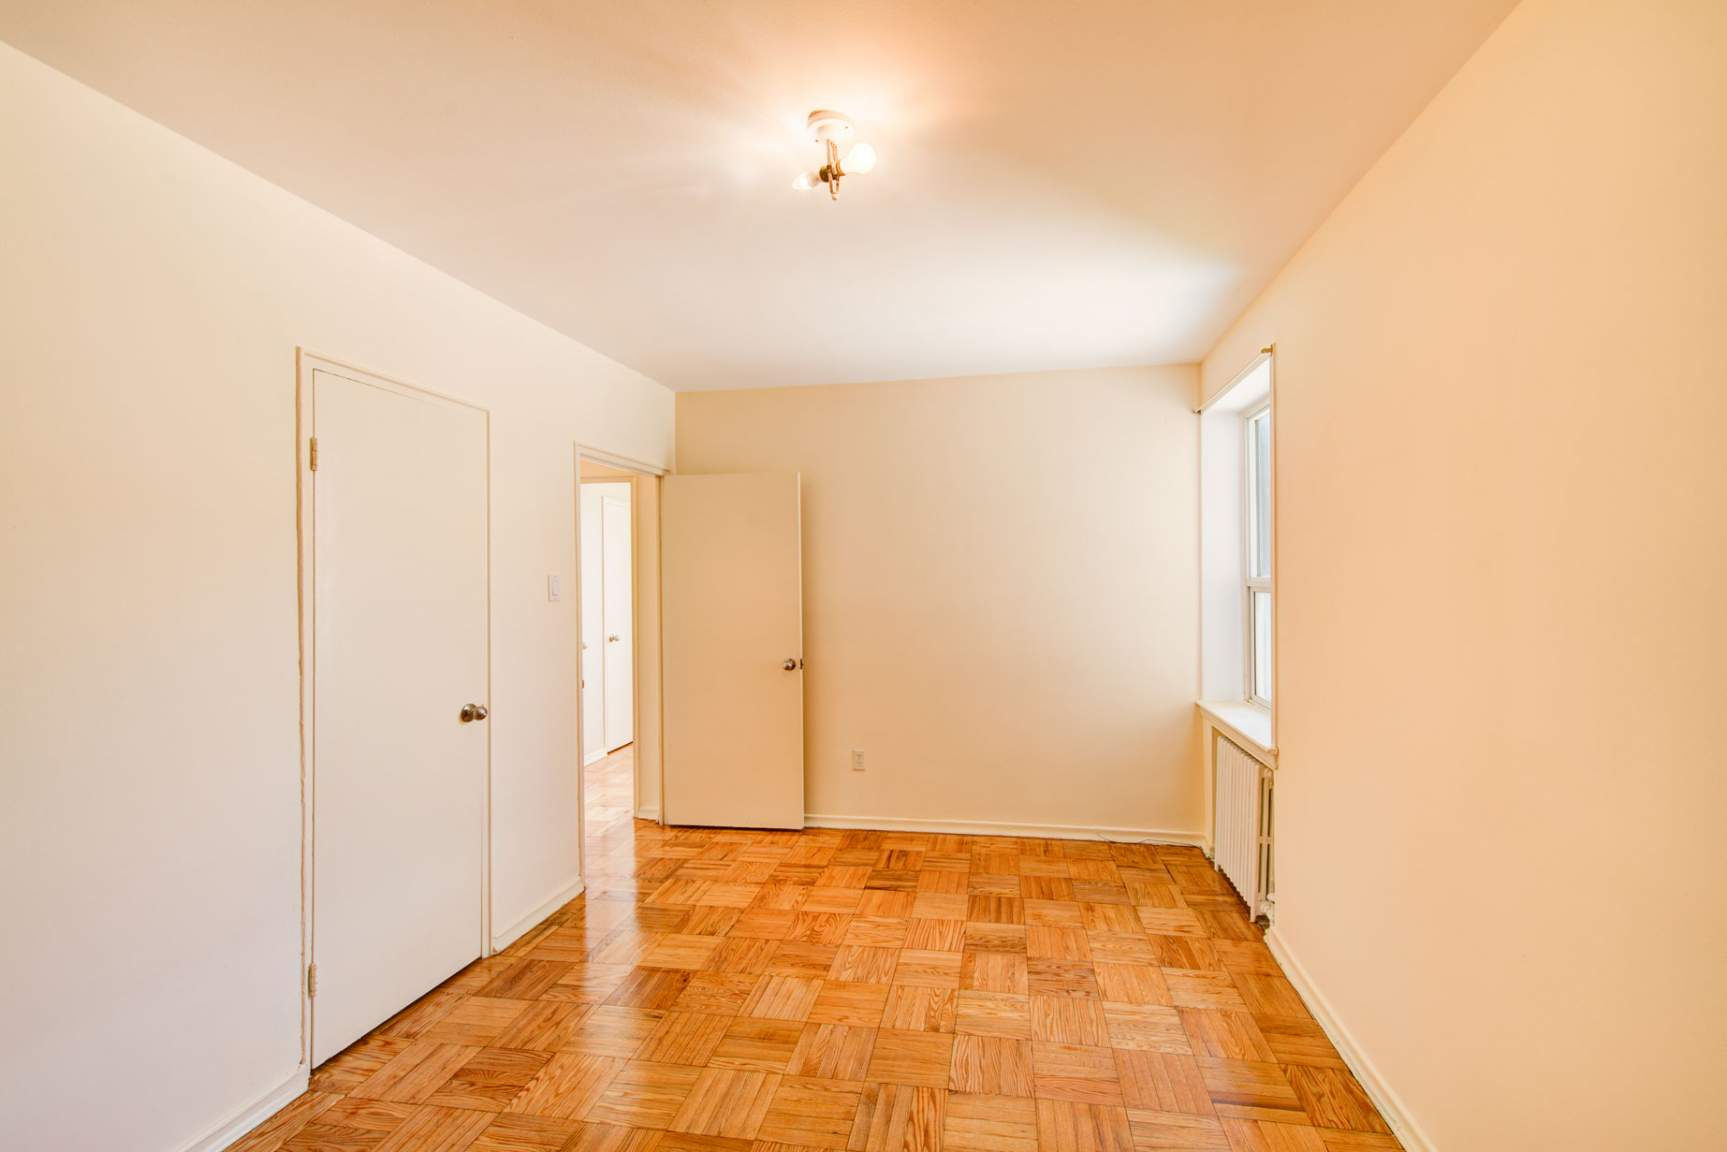 1 bedroom Apartments for rent in Toronto at Faywood - Vinci Community - Photo 13 - RentersPages – L402215